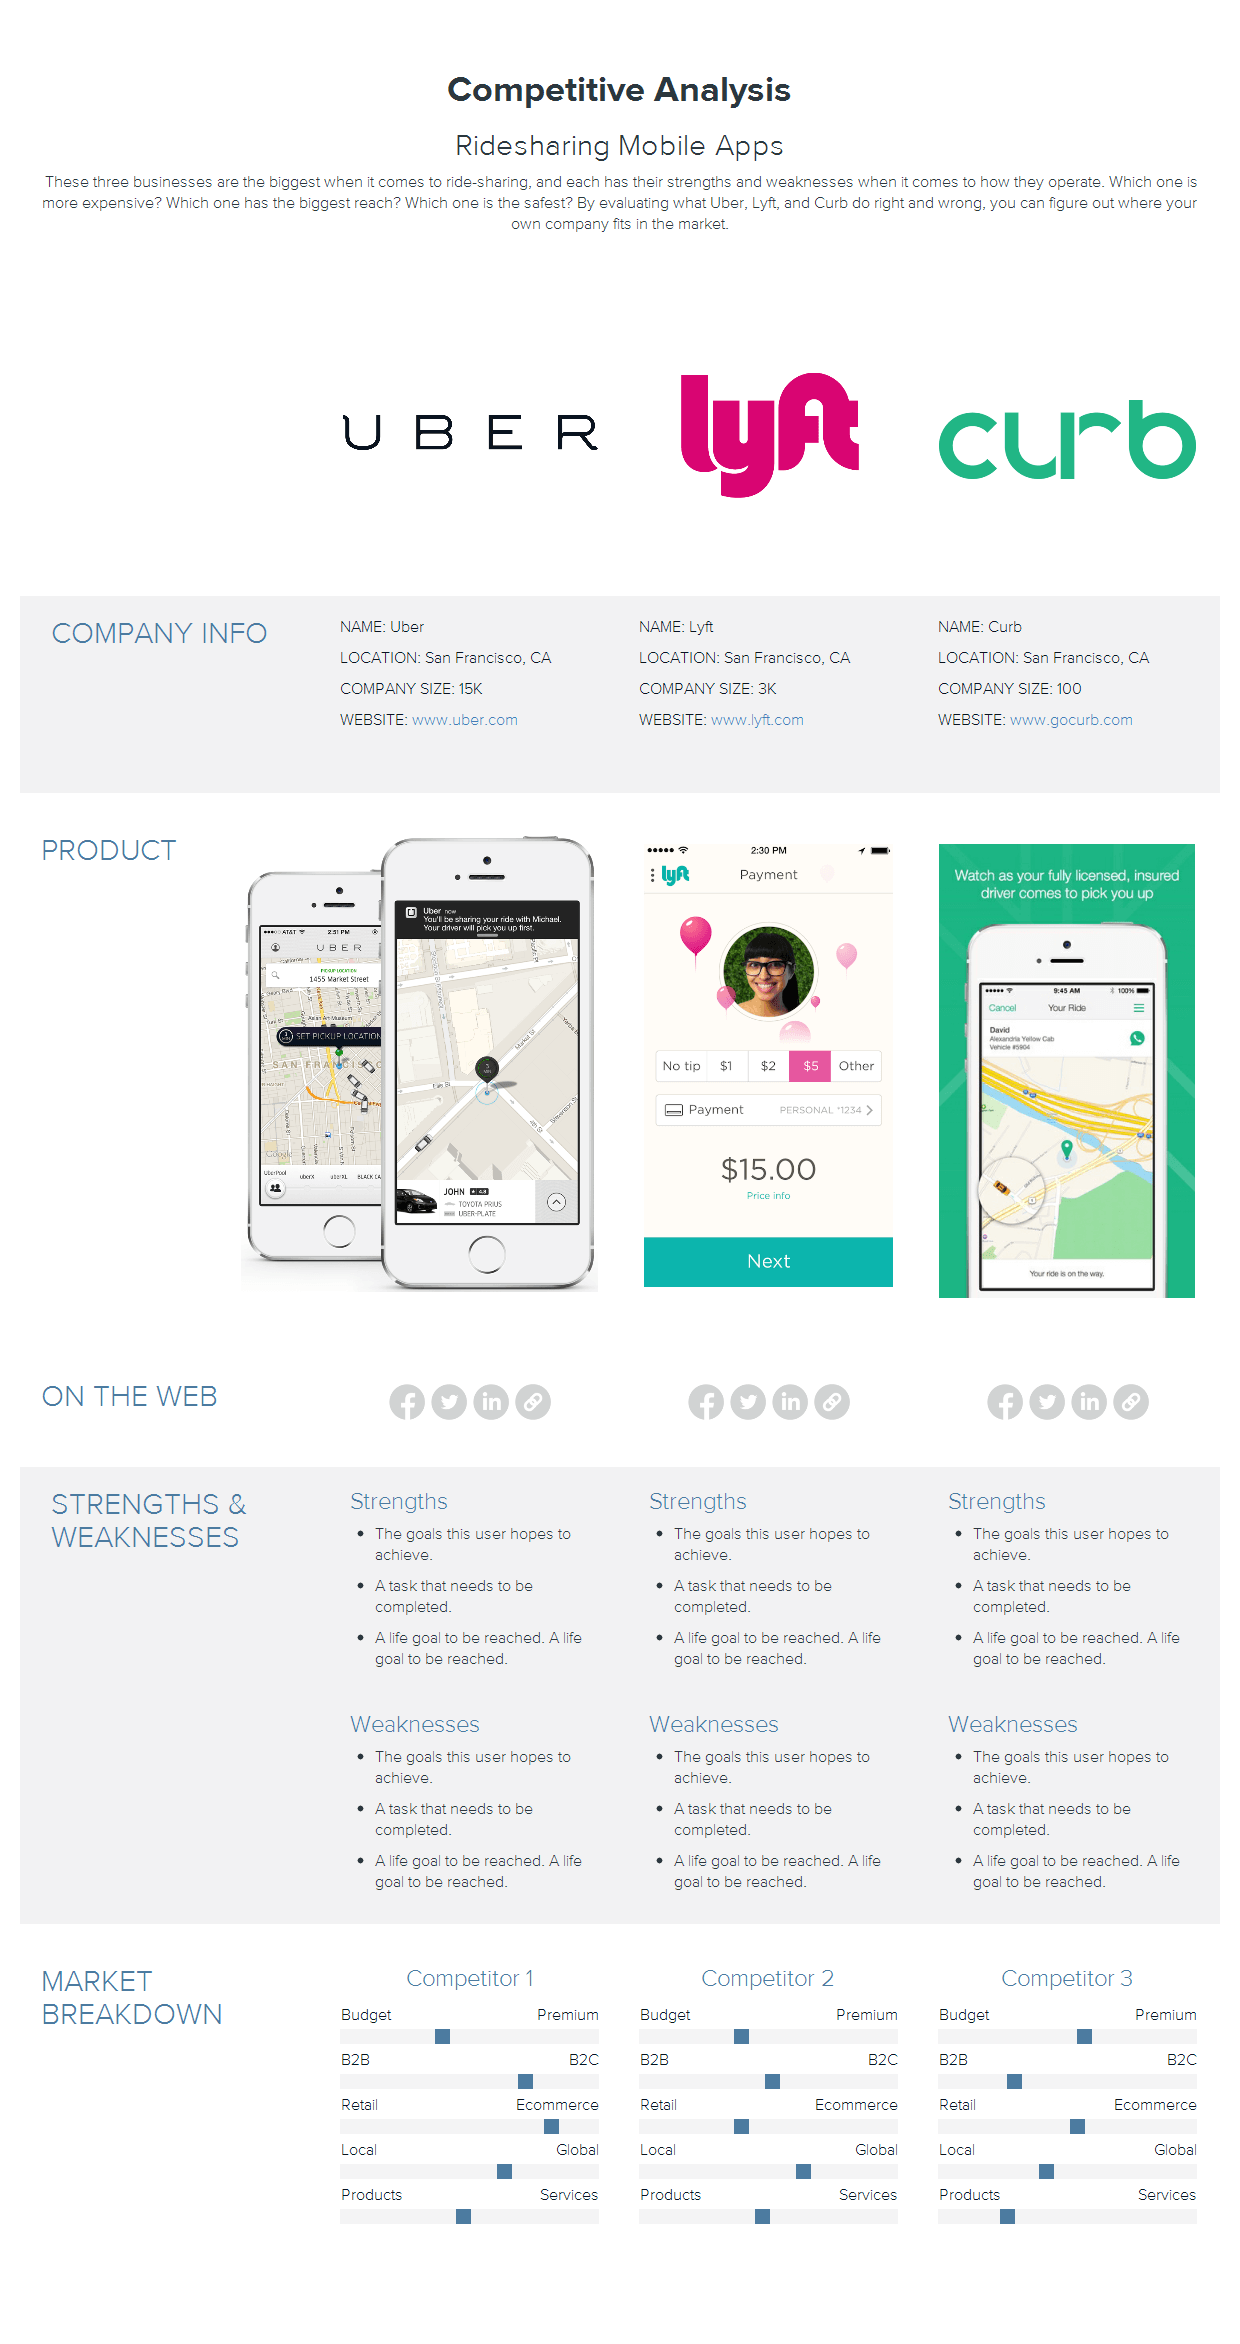 Ridesharing Apps Competitive Analysis Sample By Xtensio  Competitive Analysis Templates